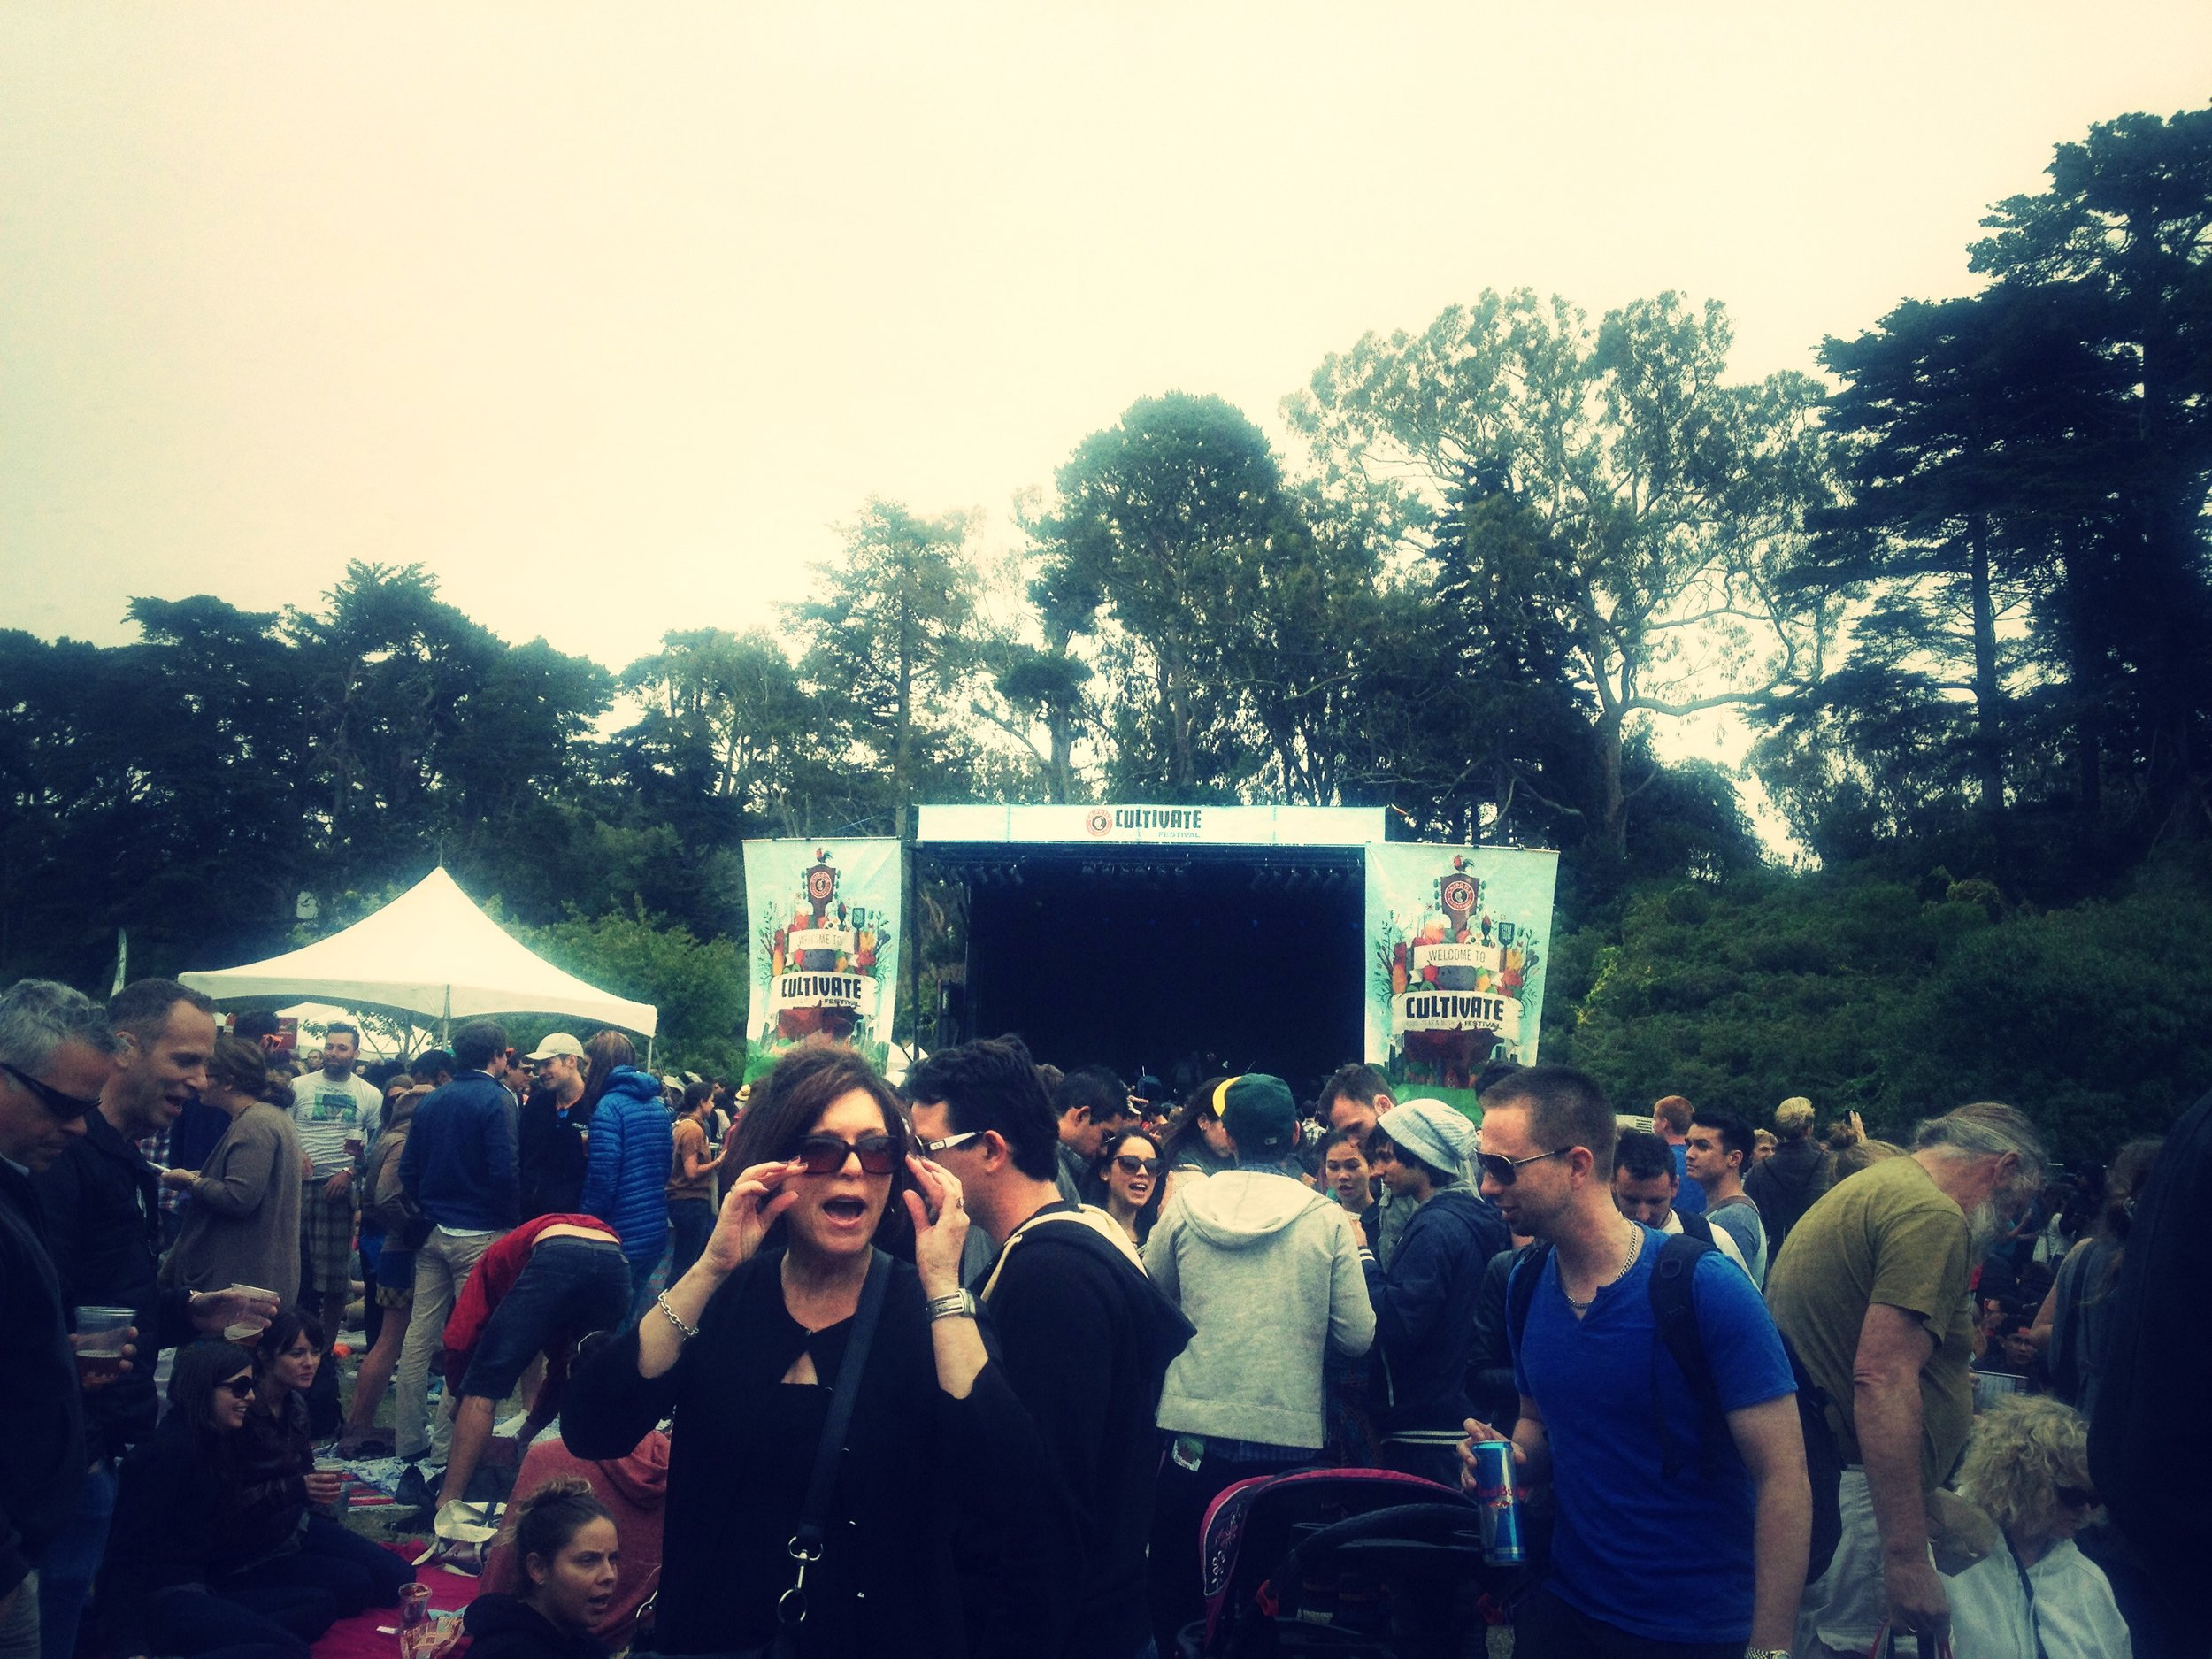 Chipotle's Cultivate Festival in Golden Gate Park this weekend. TACOS ON TACOS. And of course, a few solid bands too.